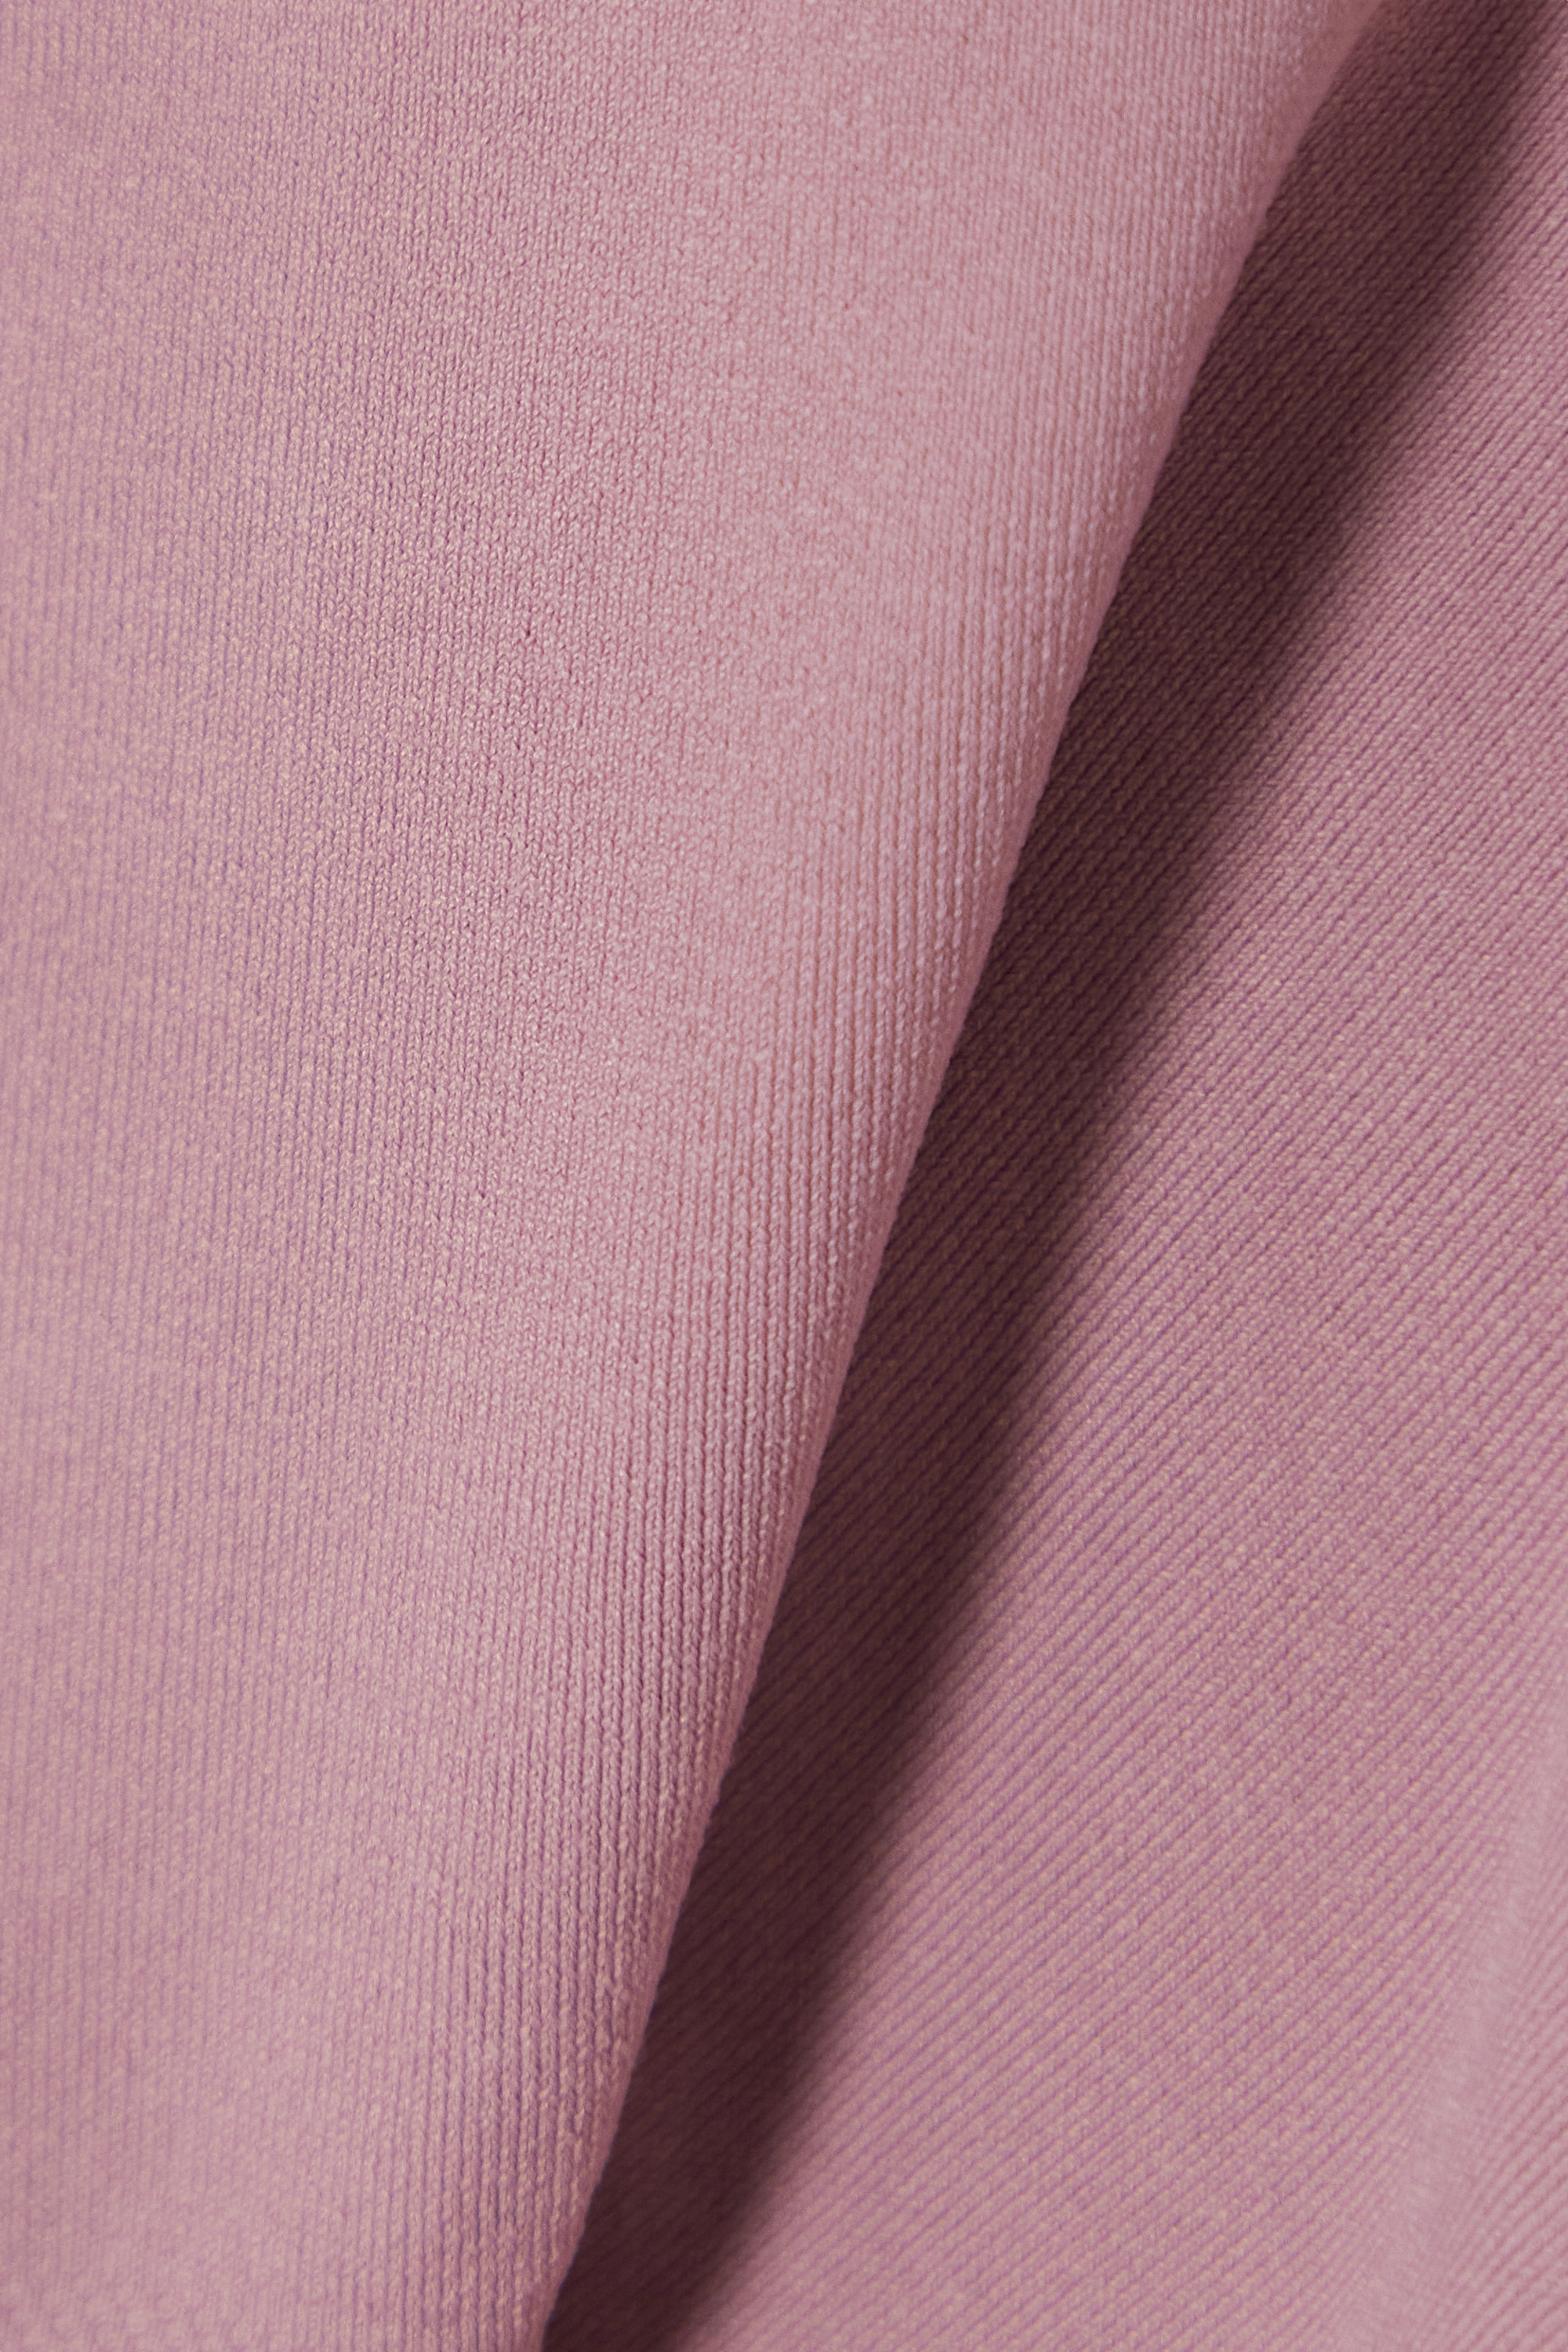 Hanro Touch Feeling Soft-BH aus Stretch-Jersey